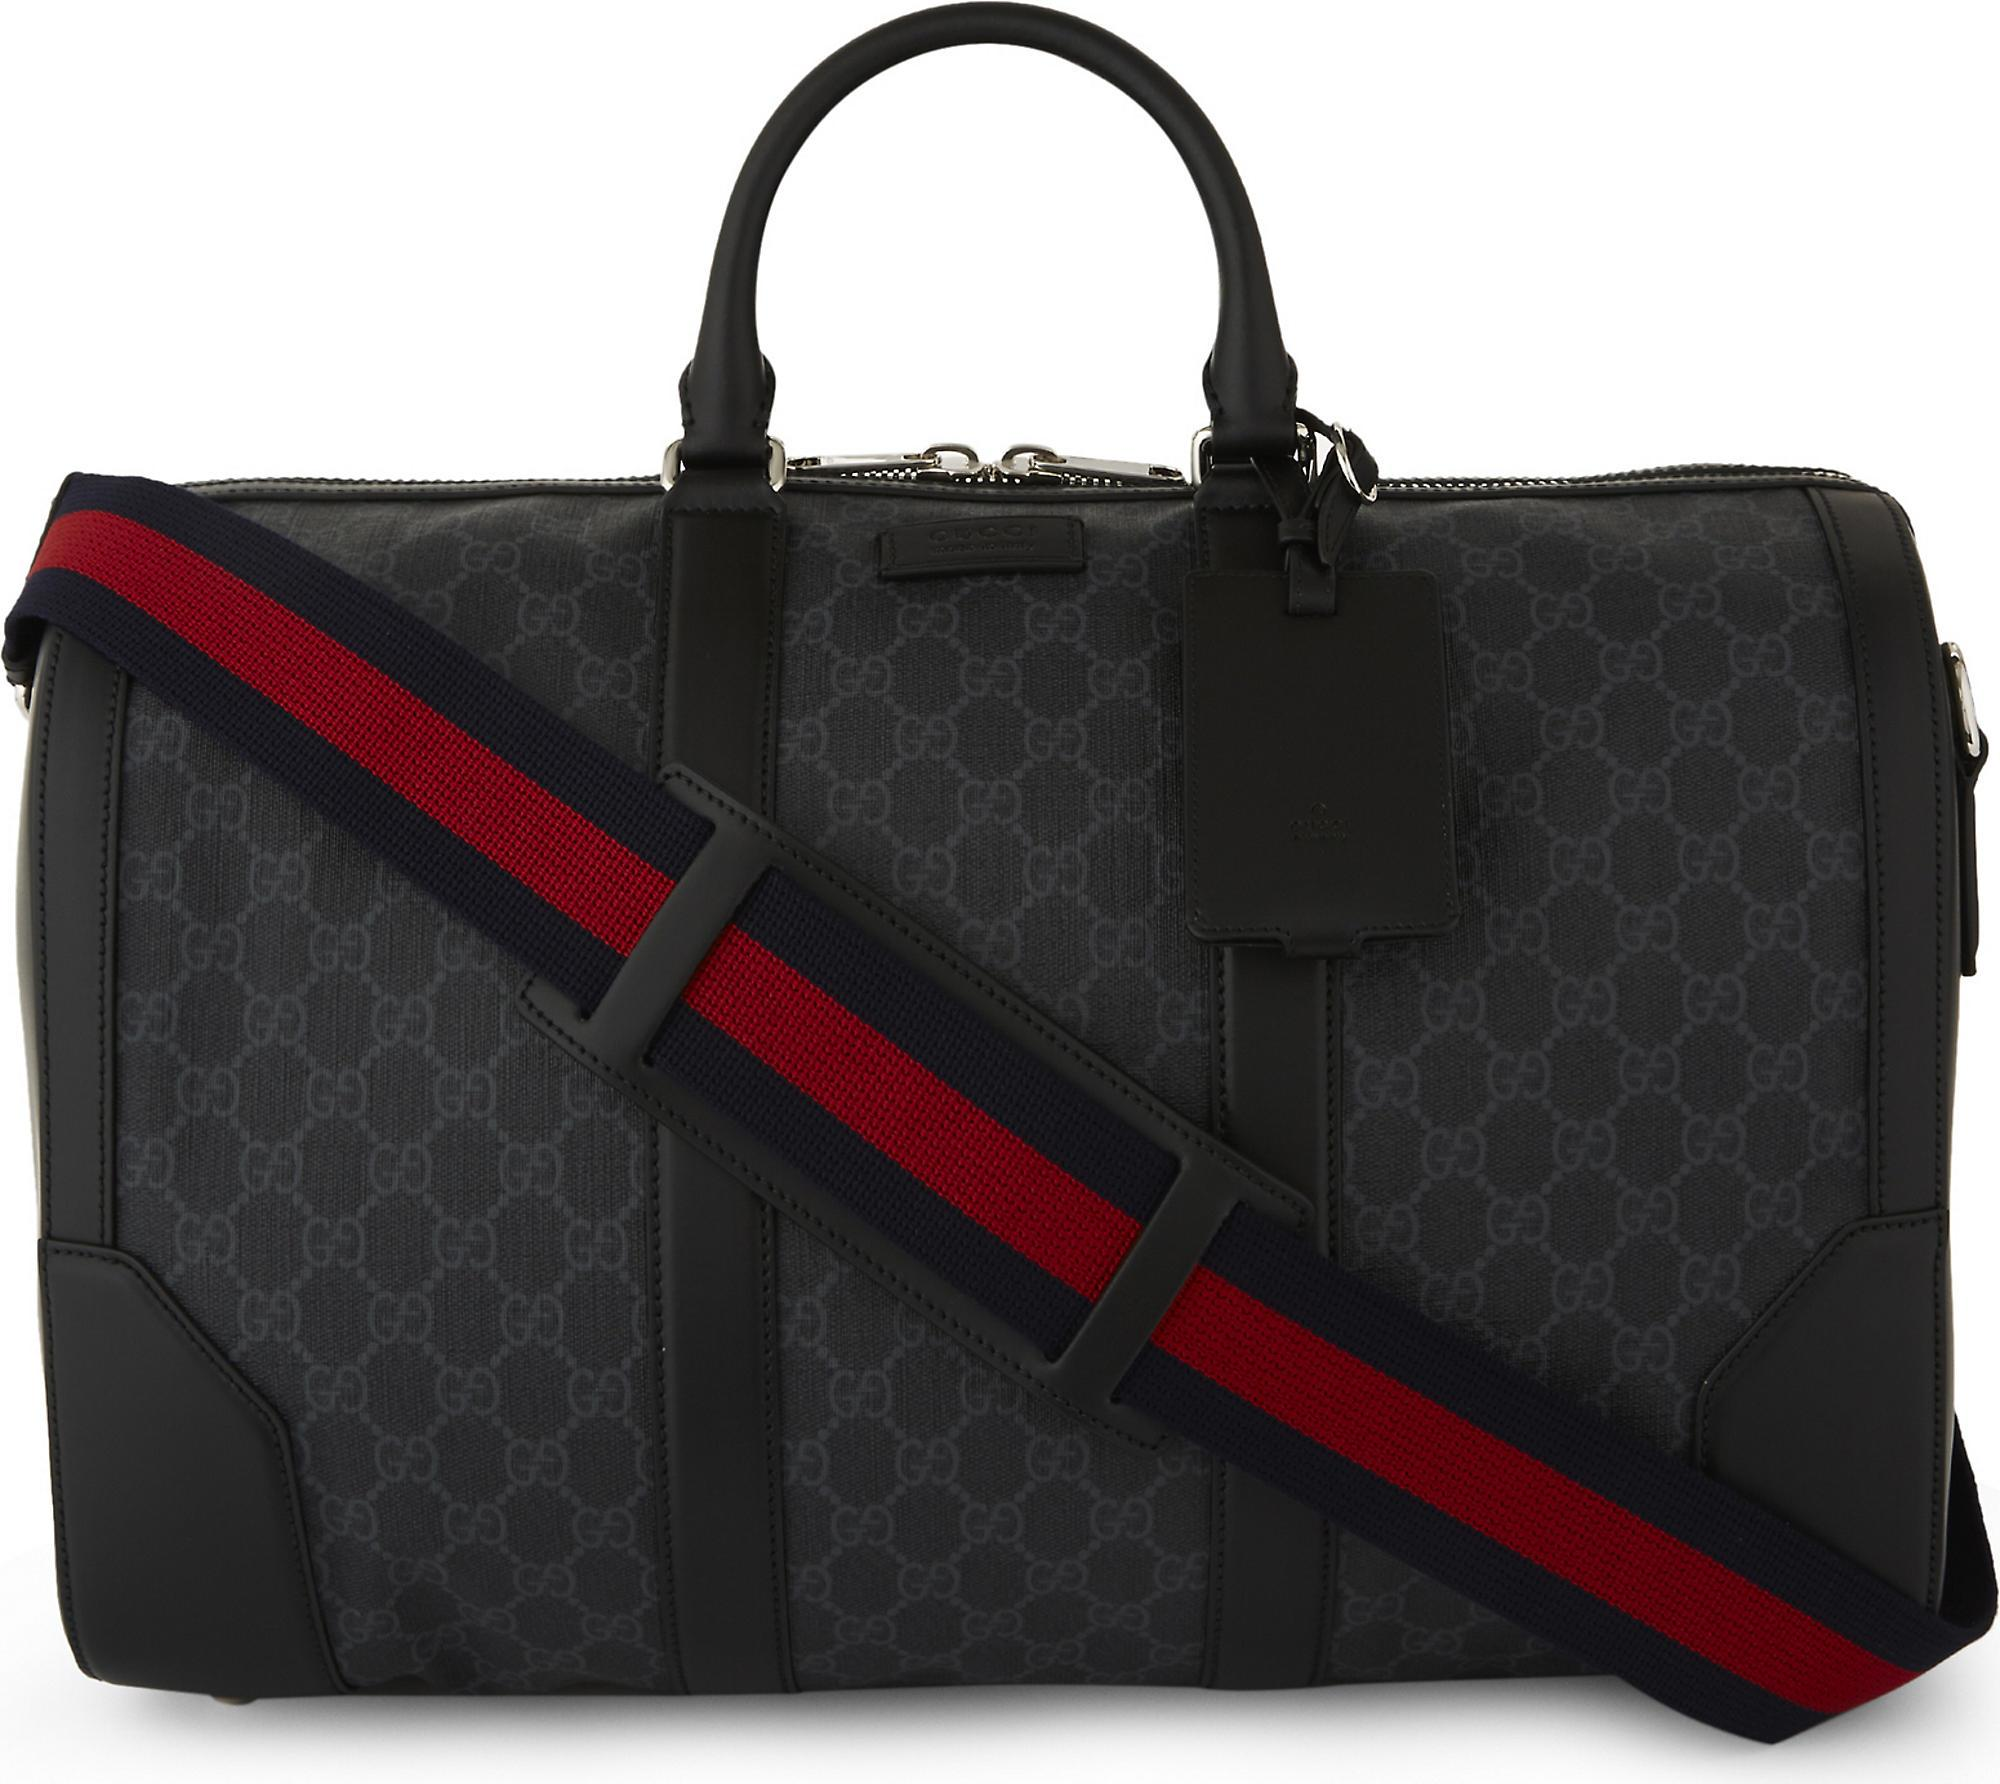 f9638859453 Lyst - Gucci Supreme Canvas And Leather Duffle Bag in Black for Men